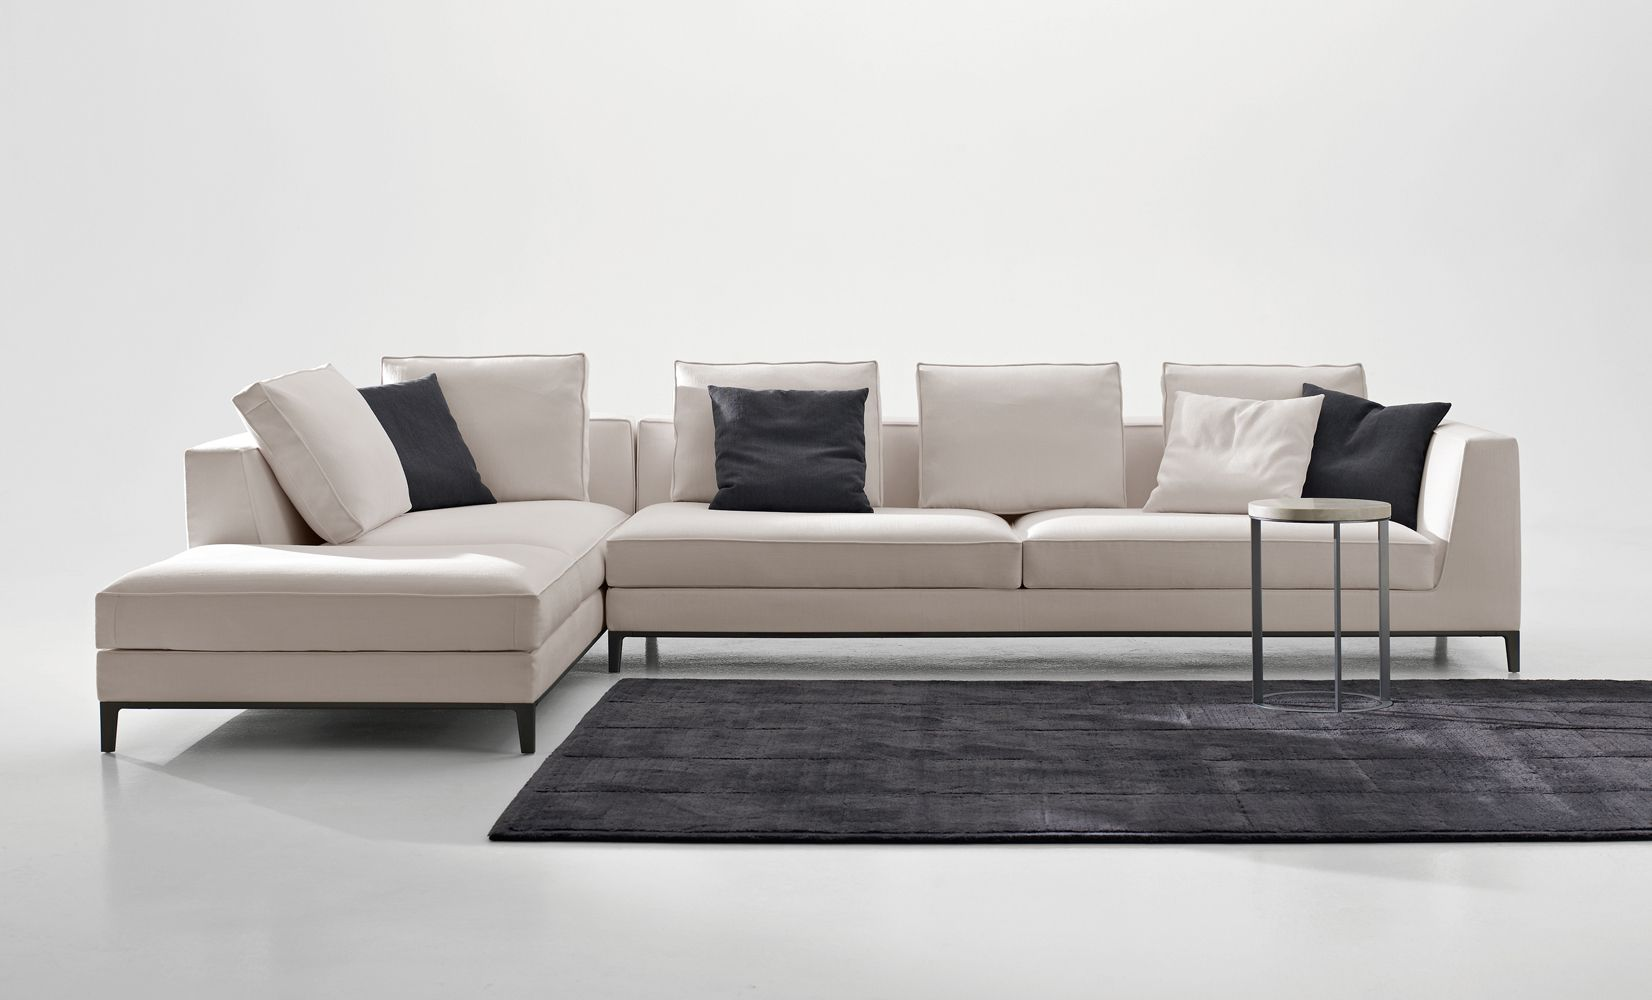 Maxalto lucrezia simplice collection l b italia sofa for B b italia maxalto sofa